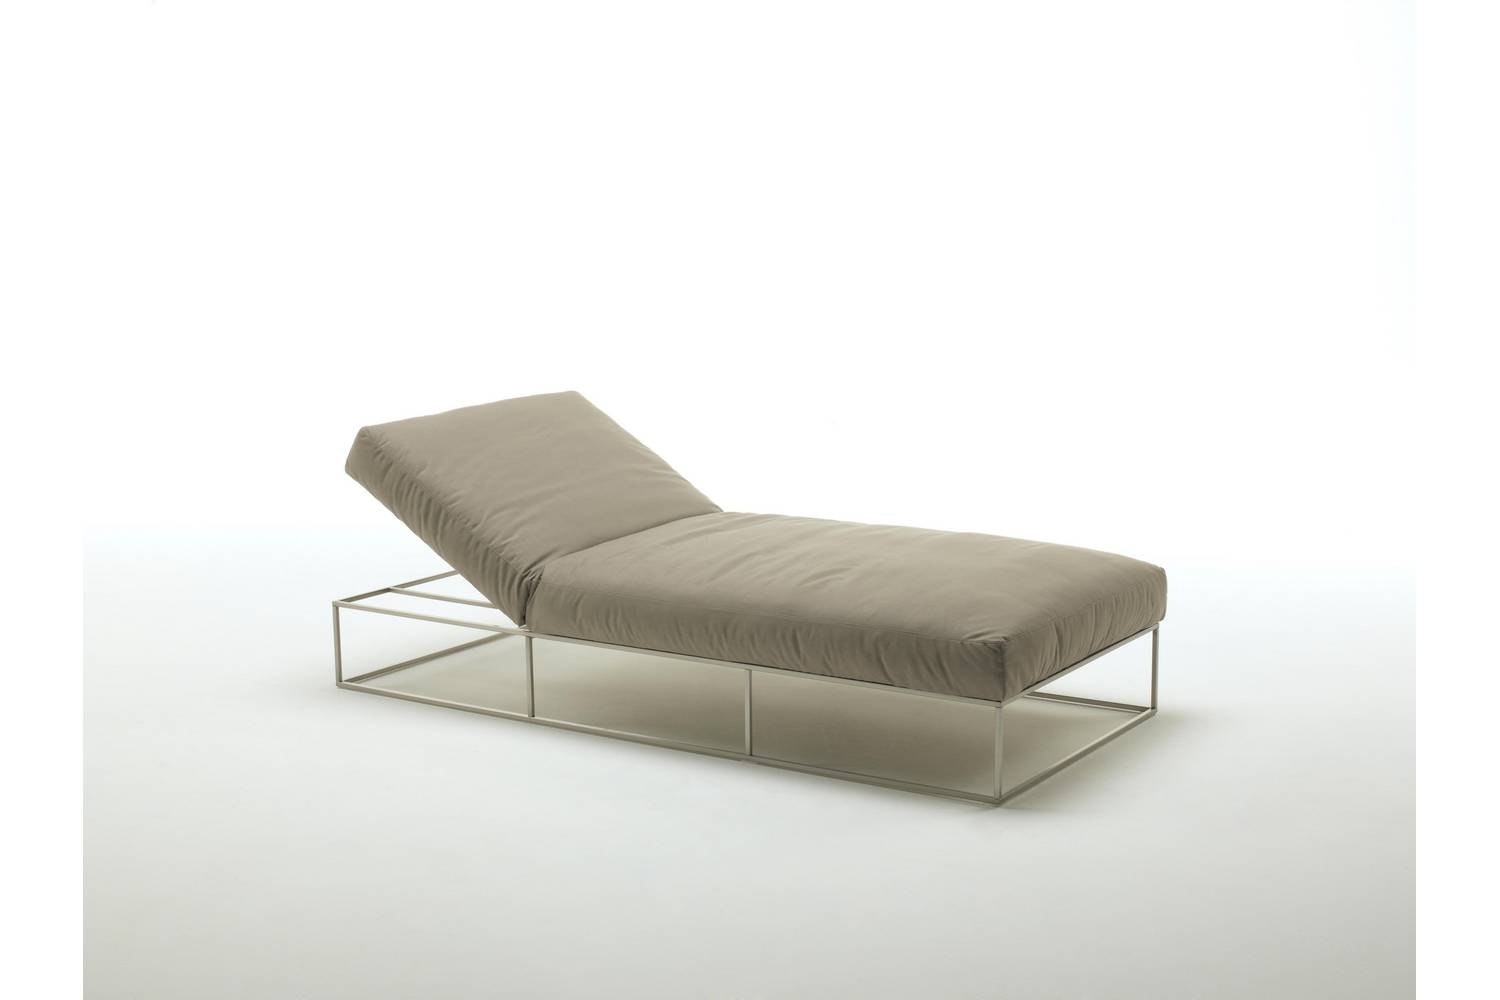 Ile Club Daybed by Piero Lissoni for Living Divani